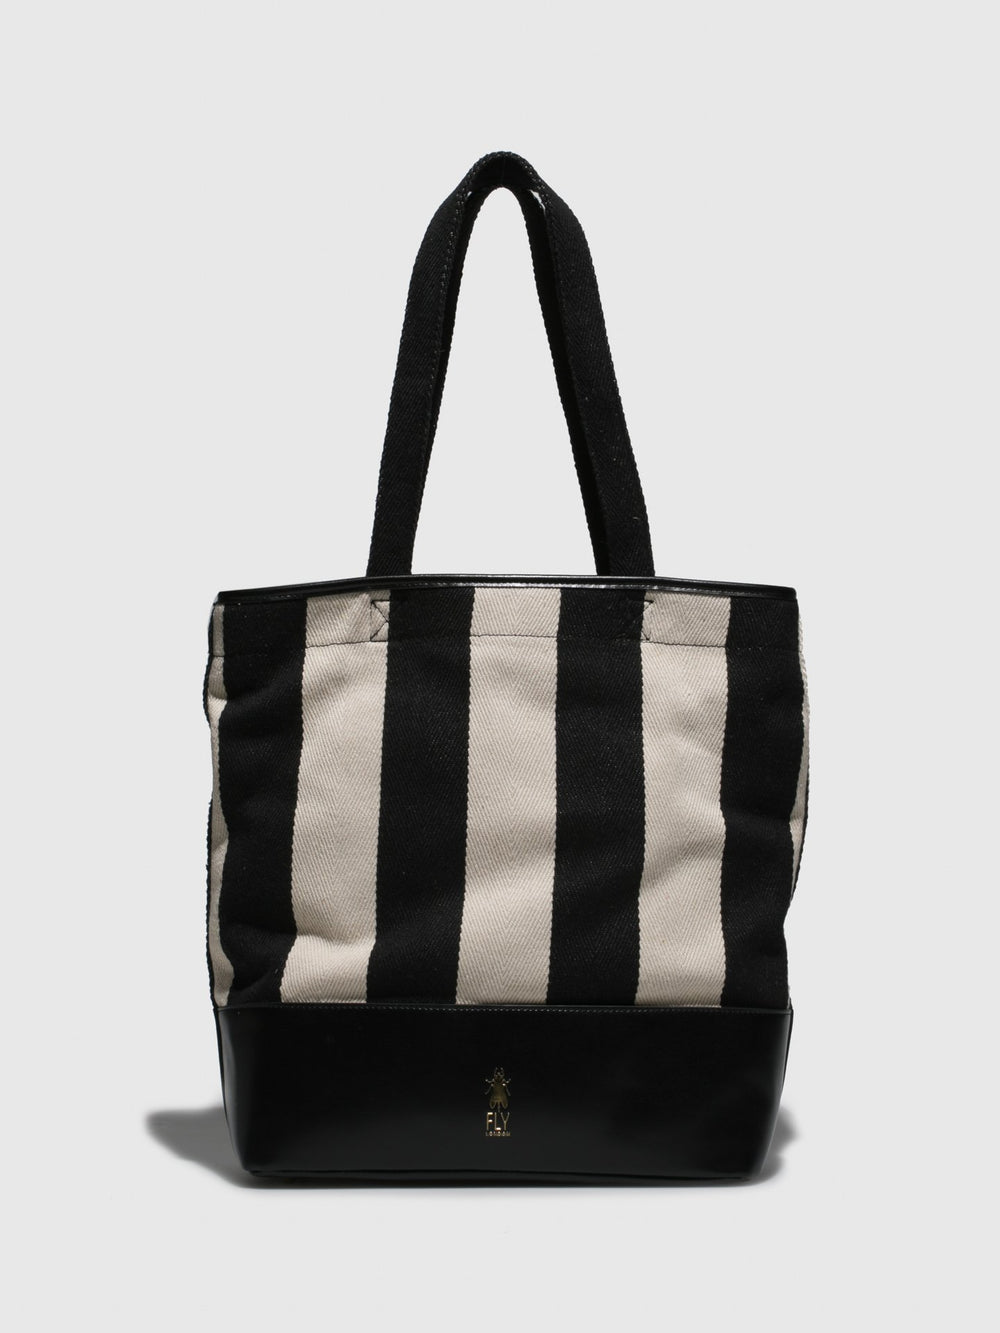 Black White Tote Bag